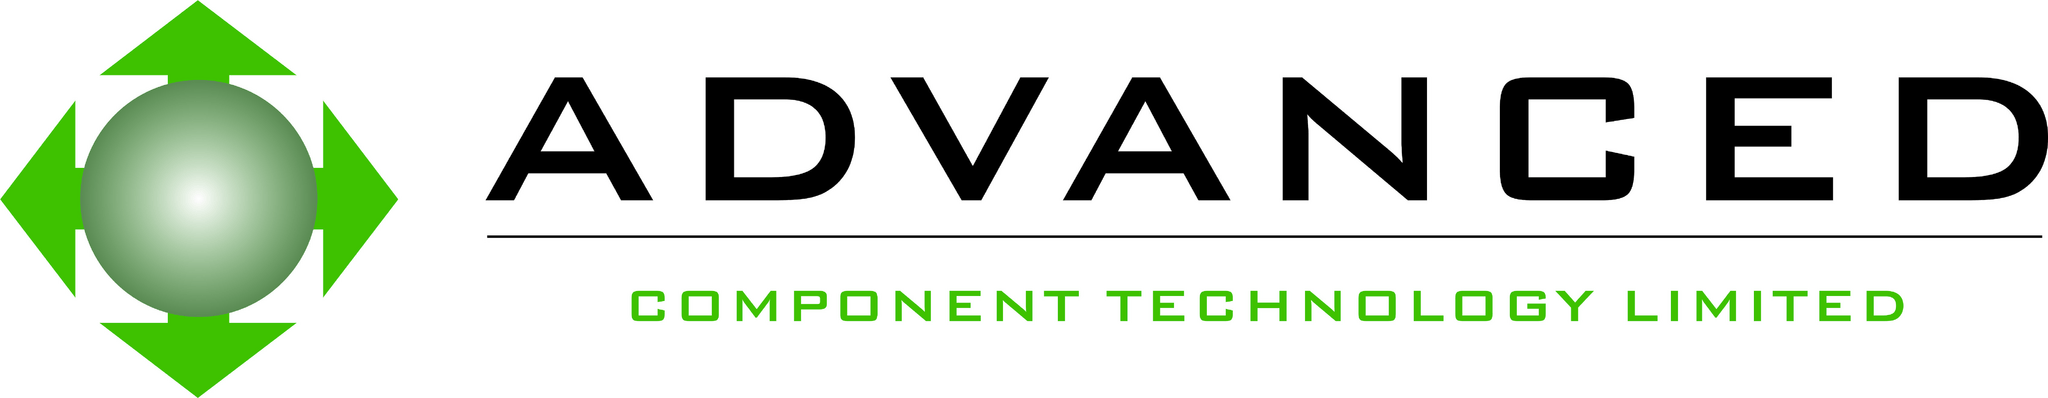 Advanced Component Technology Ltd